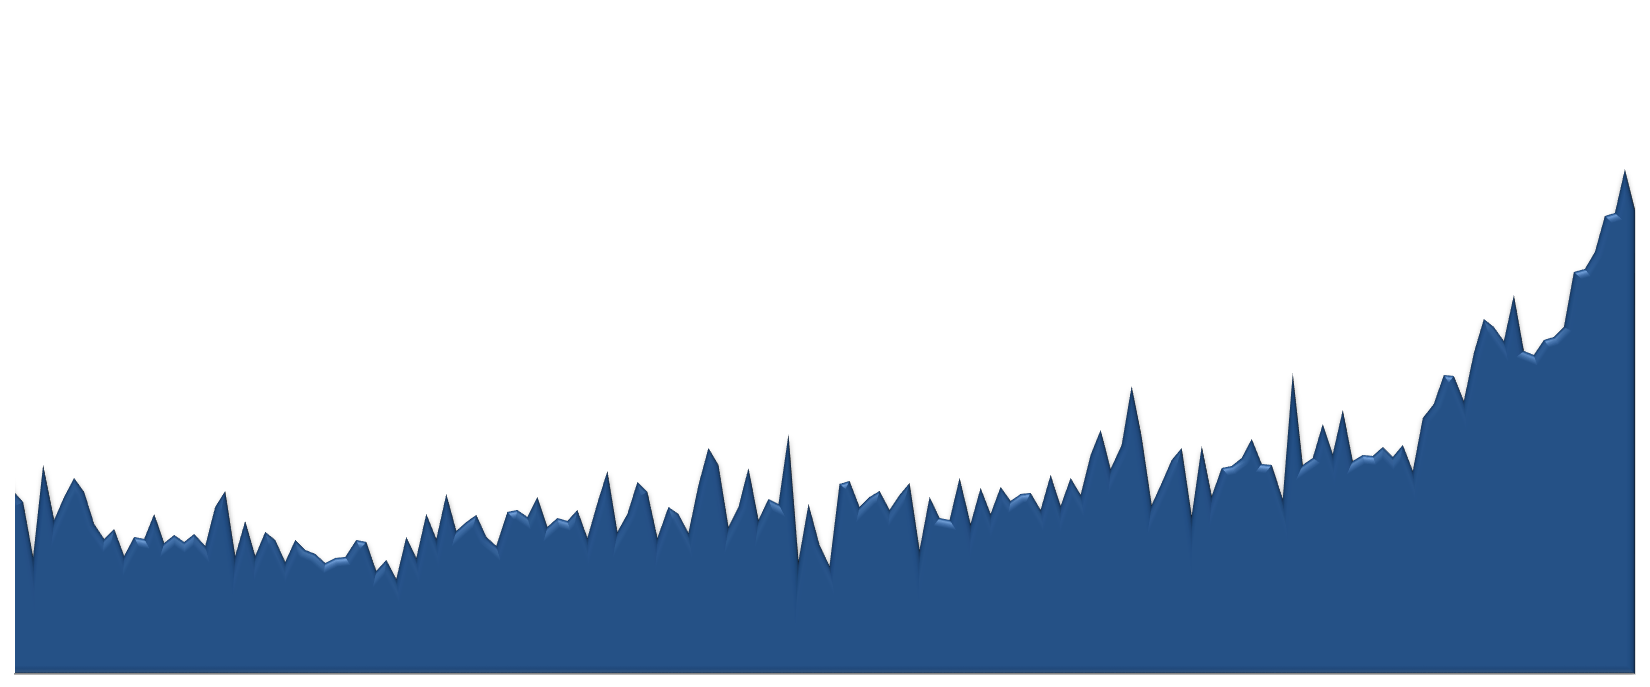 85253 Median Sales Price 2009-2013 Monthly Chart